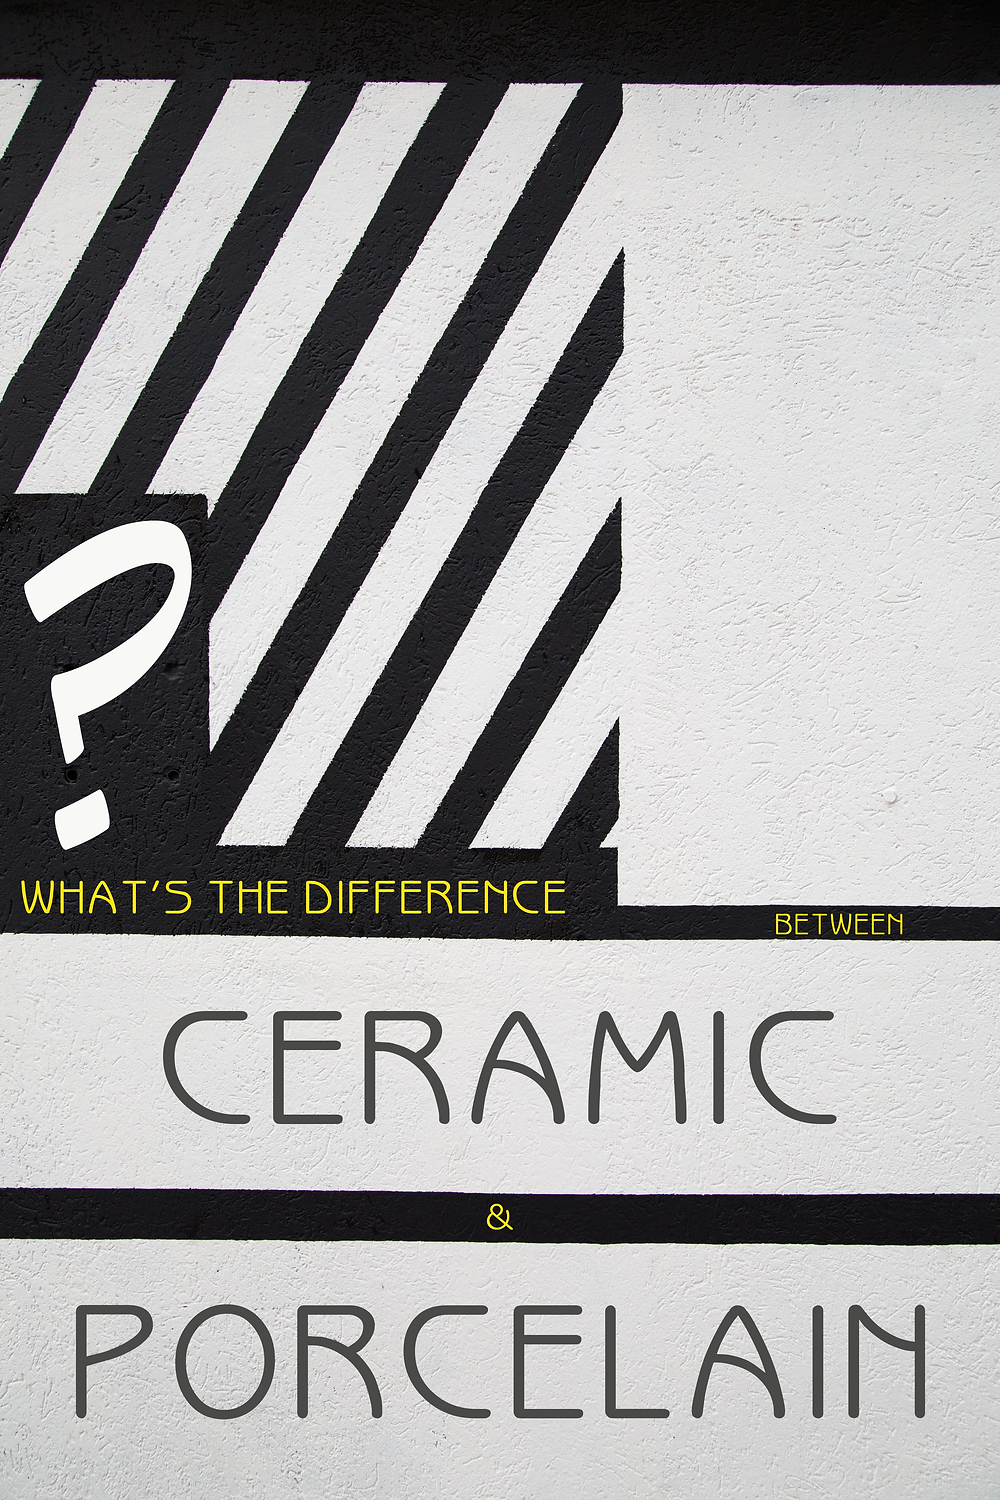 What's the difference between ceramic and porcelain?